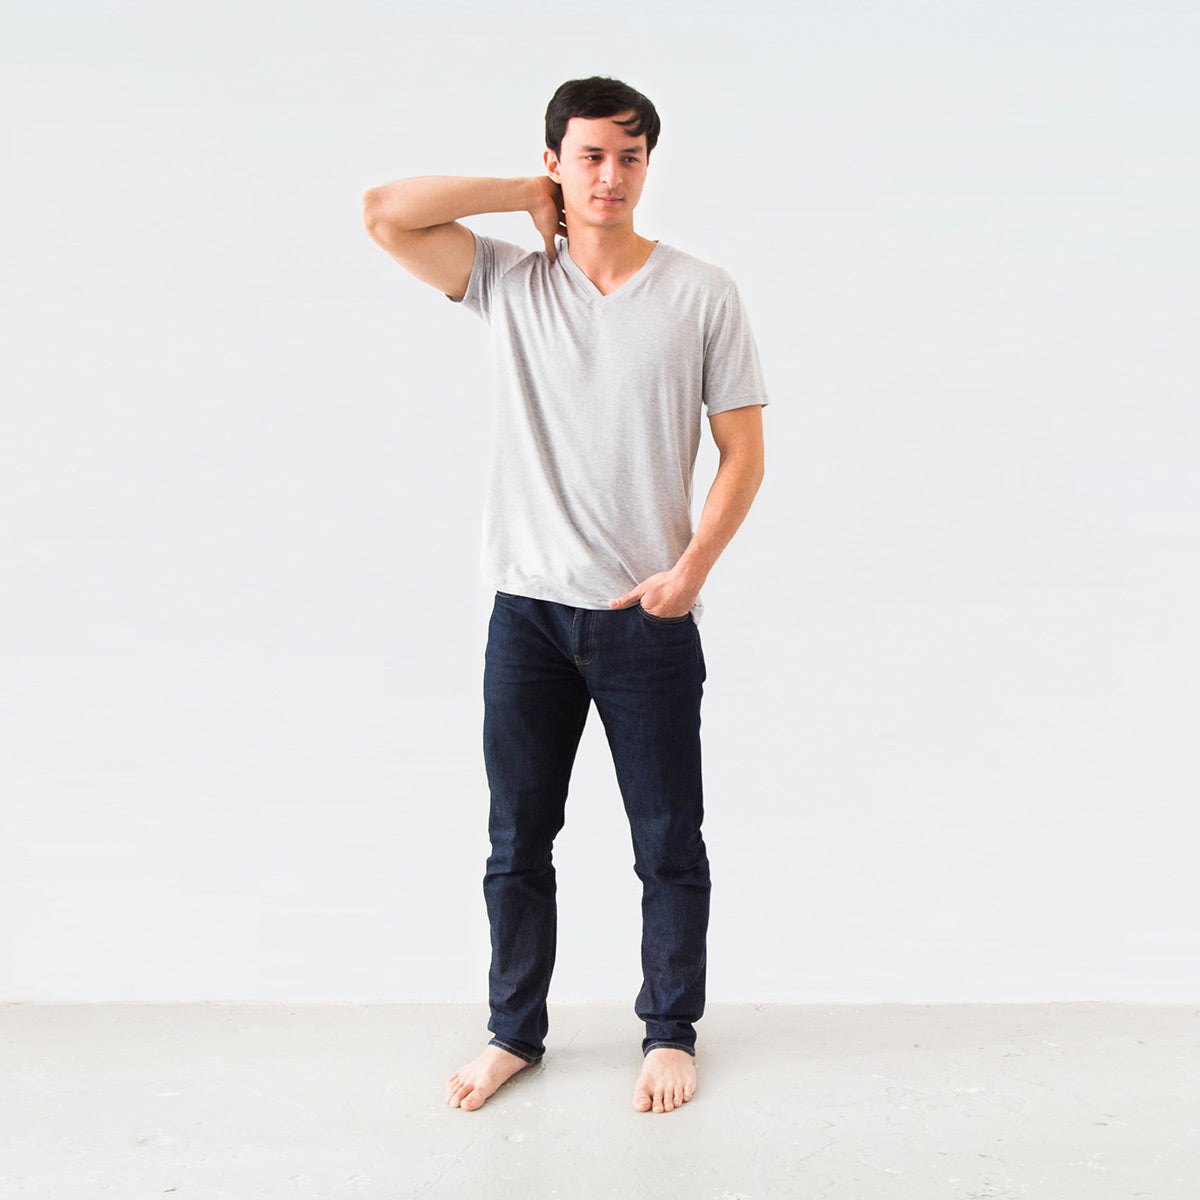 Meet the perfect men's v-neck tee. Ethically made in Canada from sustainable materials. Luxuriously soft. Shrink and fade resistant. This will be your new go-to.